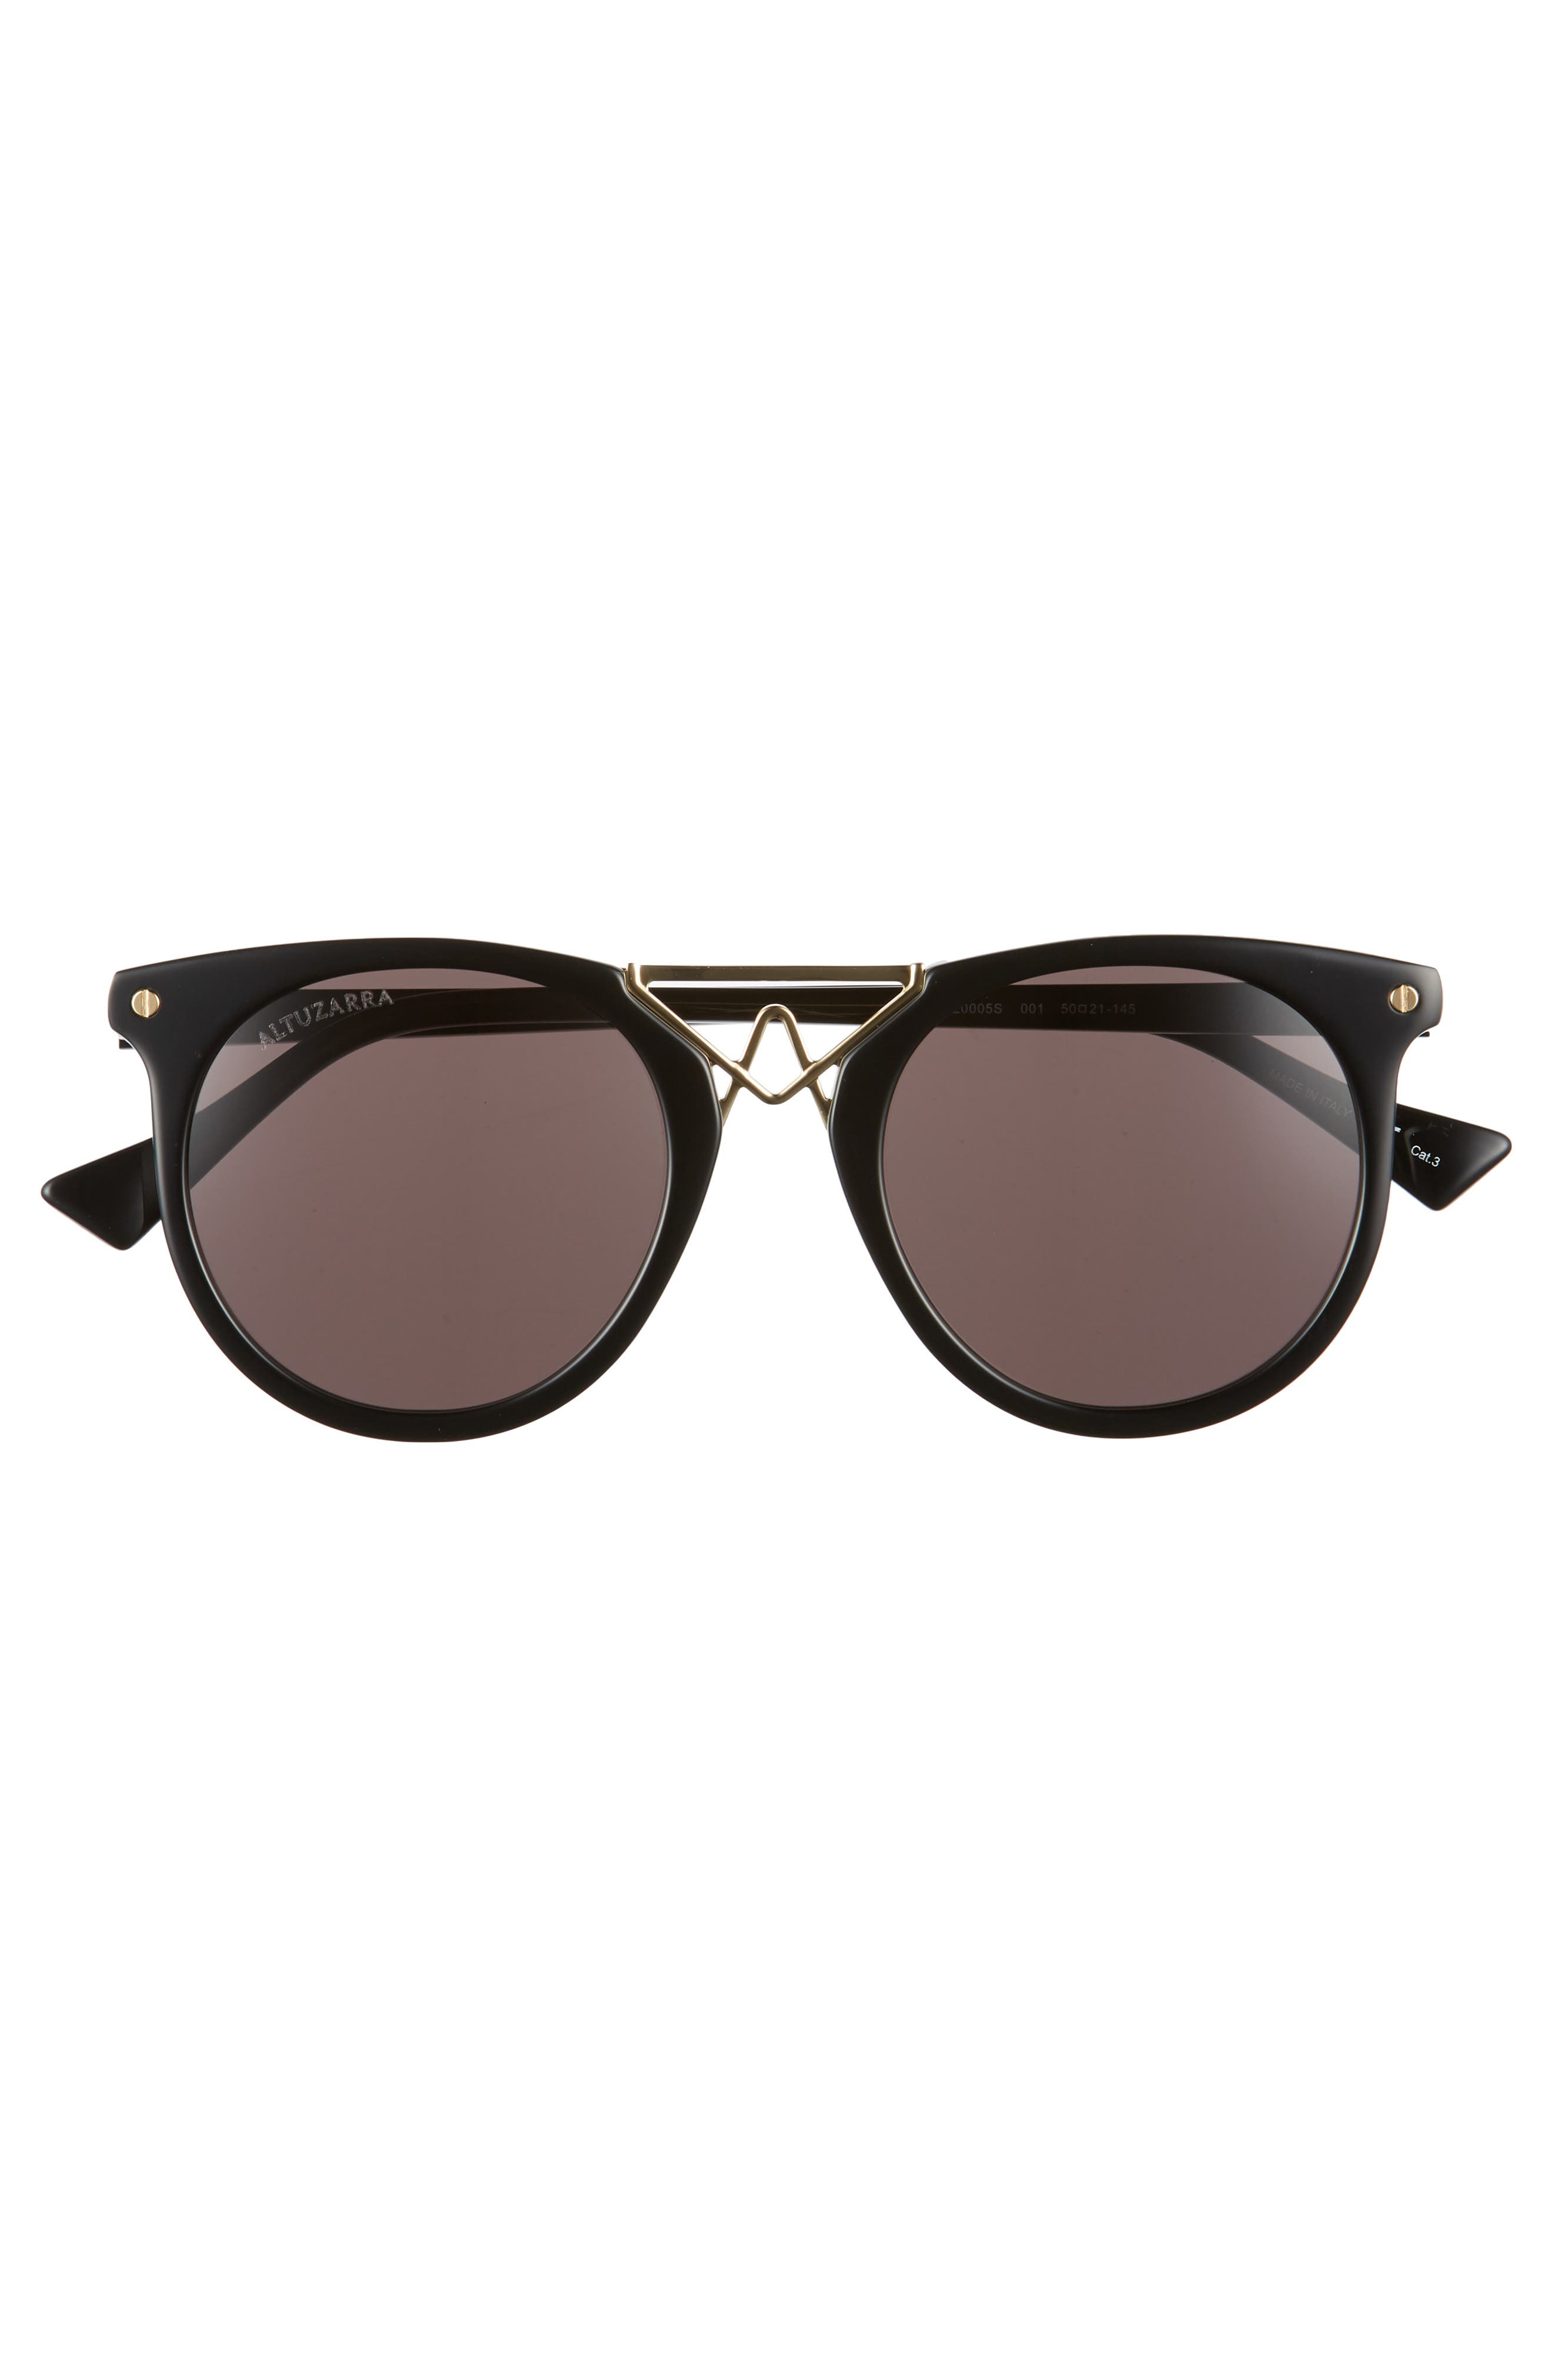 50mm Round Sunglasses,                             Alternate thumbnail 3, color,                             BLACK/ GOLD